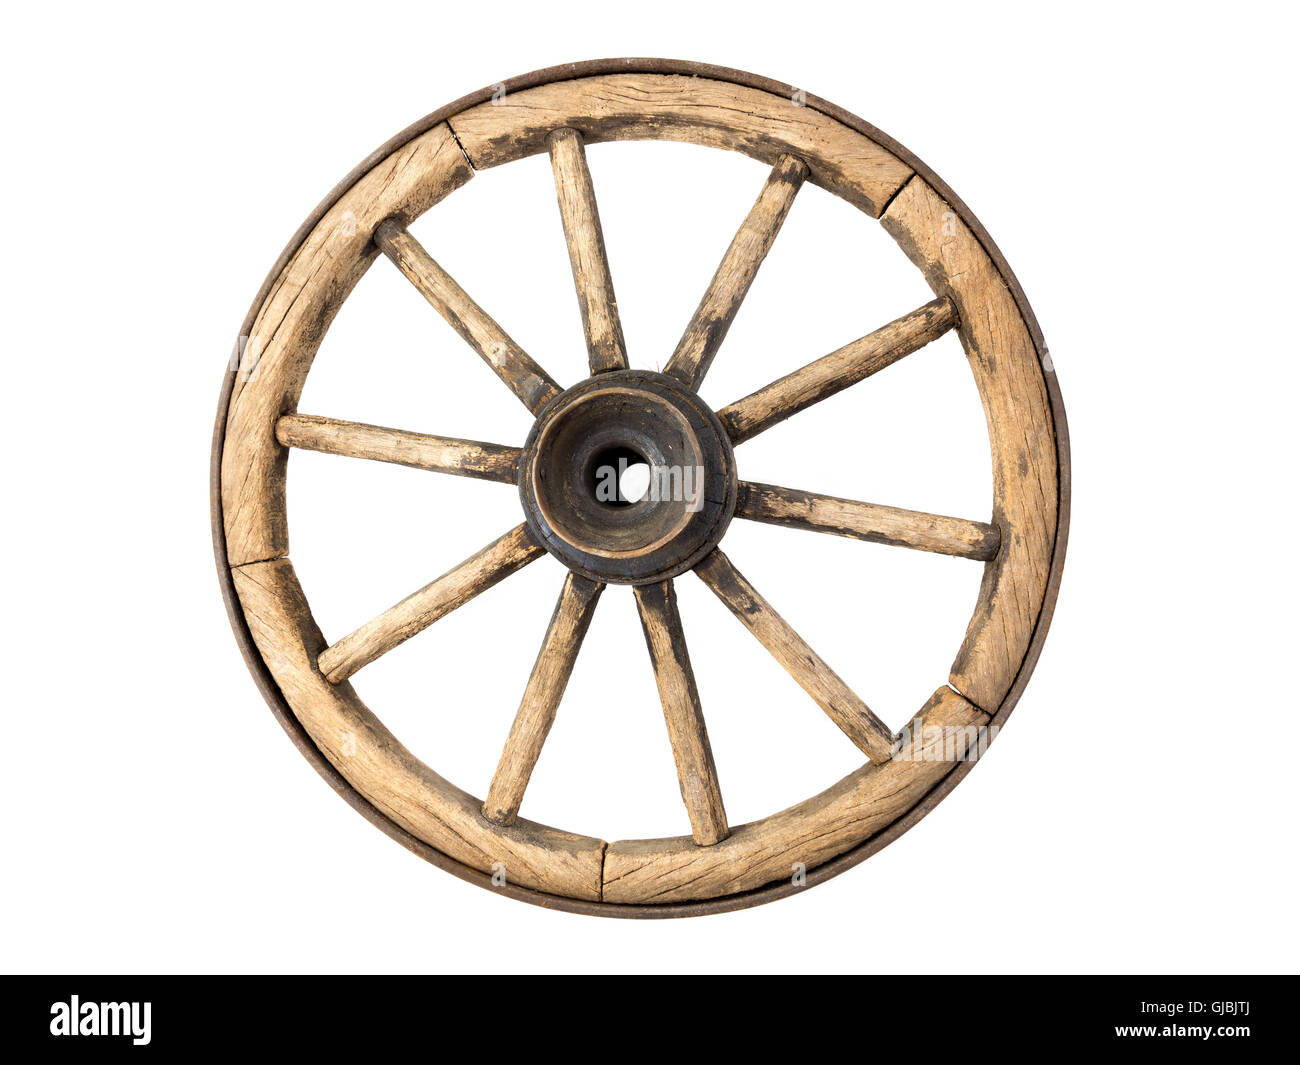 Old wooden wagon wheel isolated on white background - Stock Image